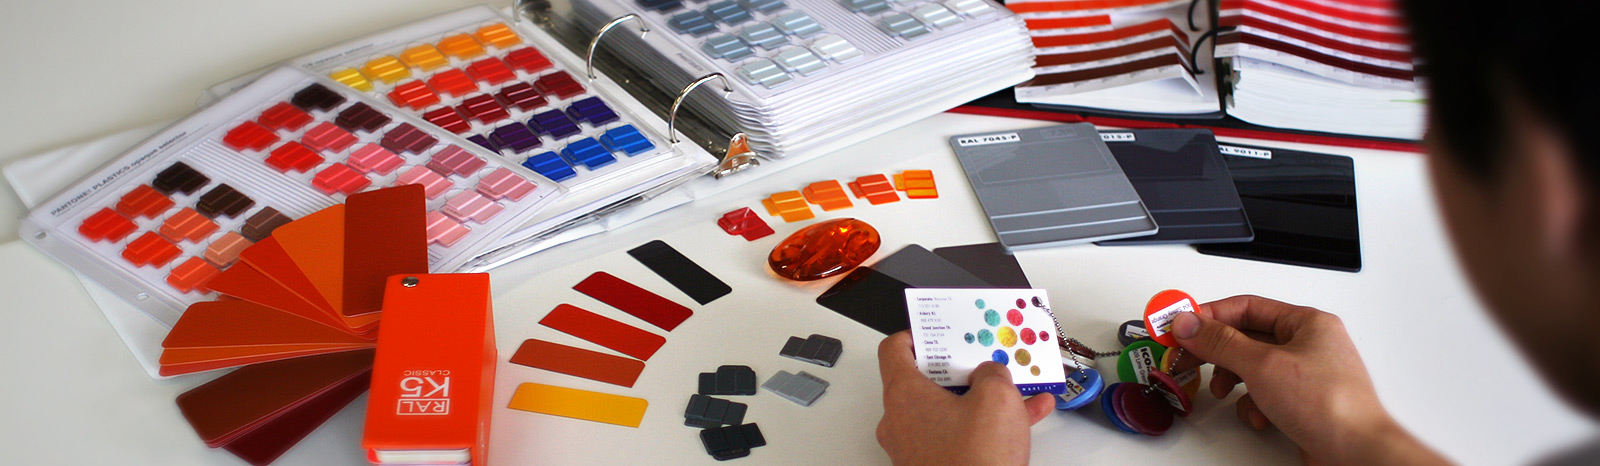 color selection in product design